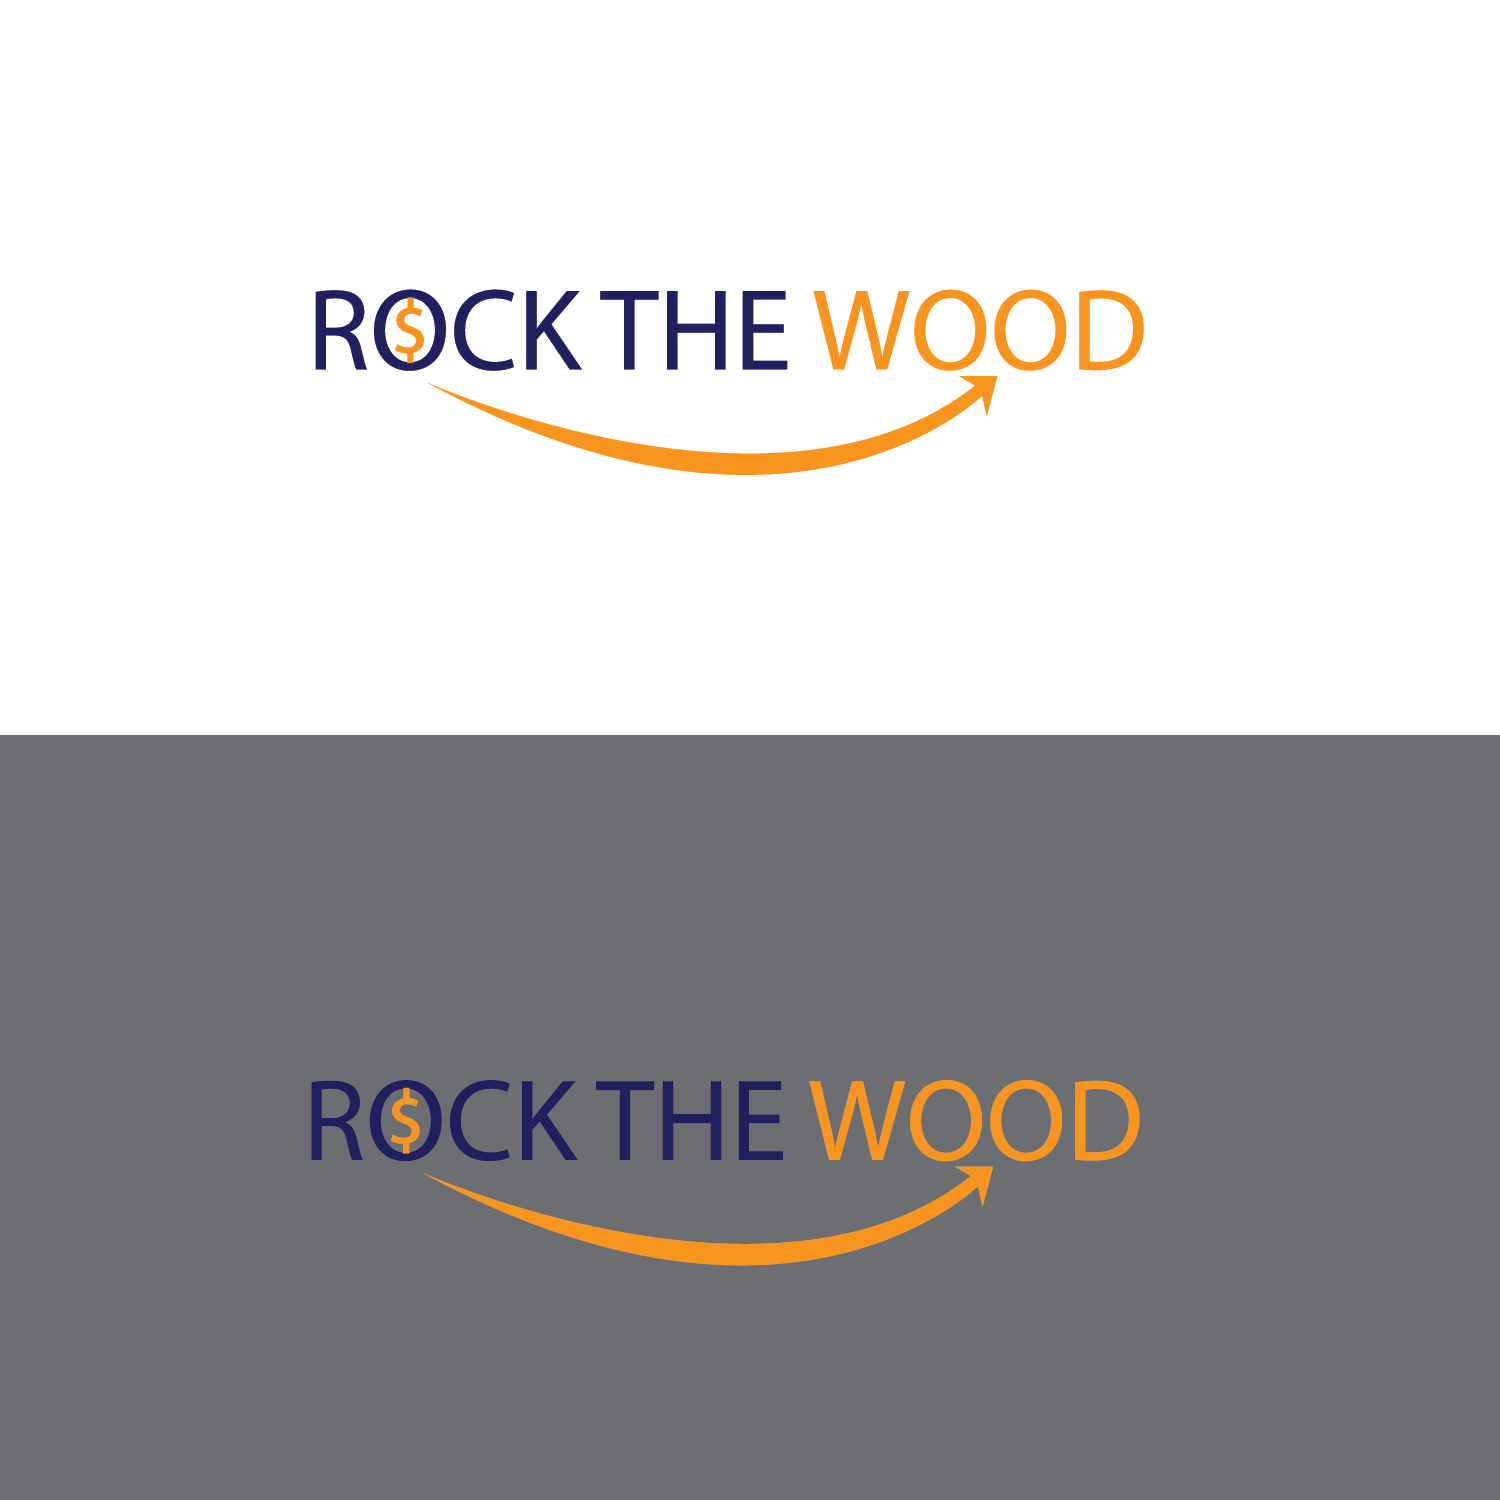 Logo Design by Shadman Sakib - Entry No. 111 in the Logo Design Contest New Logo Design for Rock the Wood.